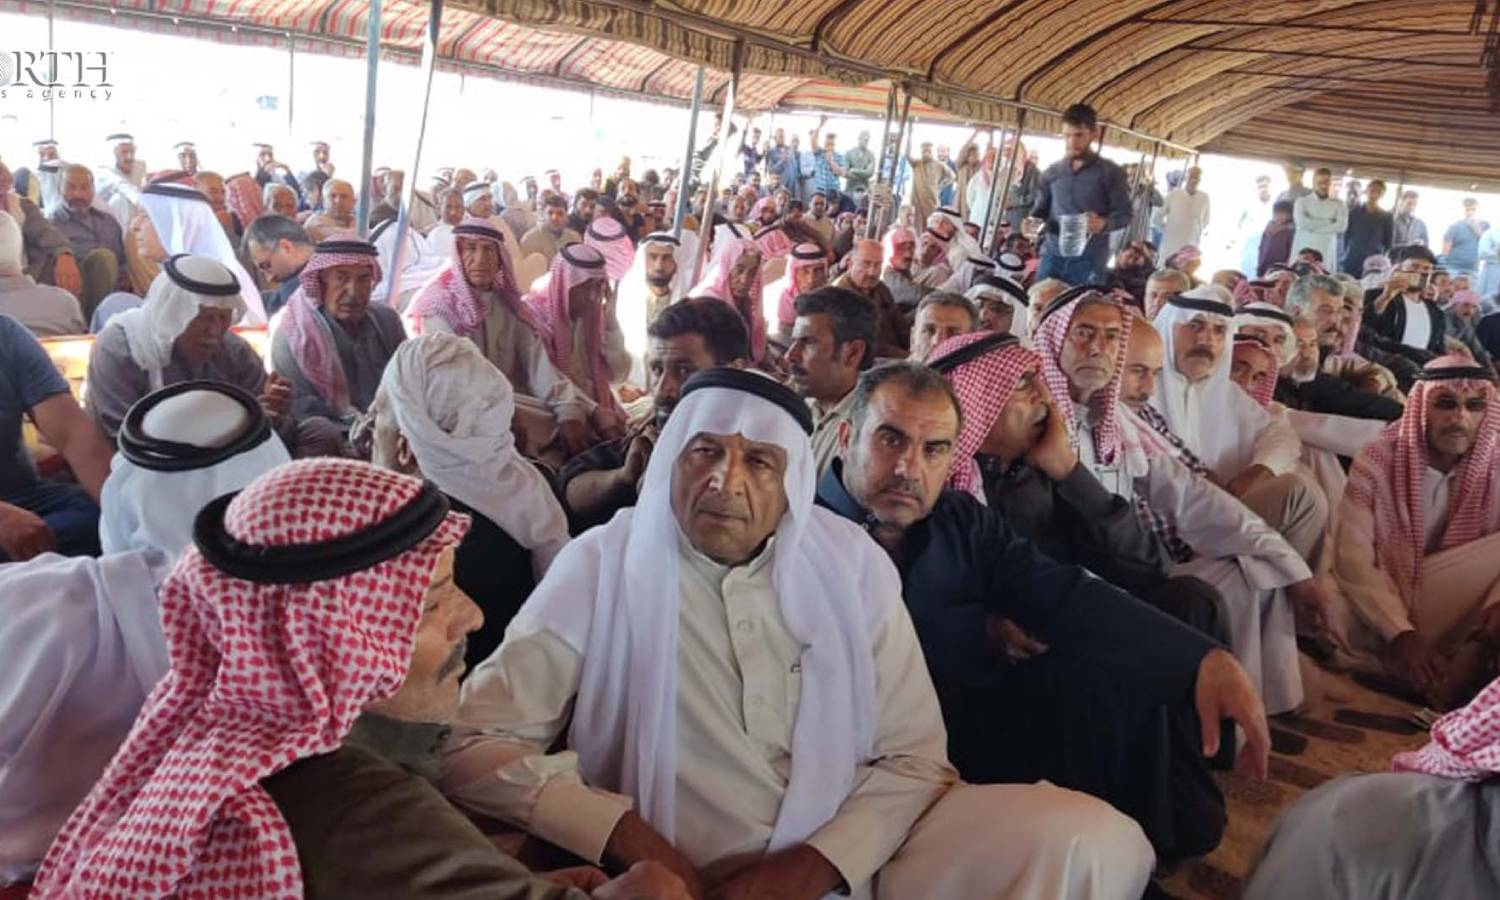 The meeting of dignitaries and tribal sheiks in Manbij (North Press)